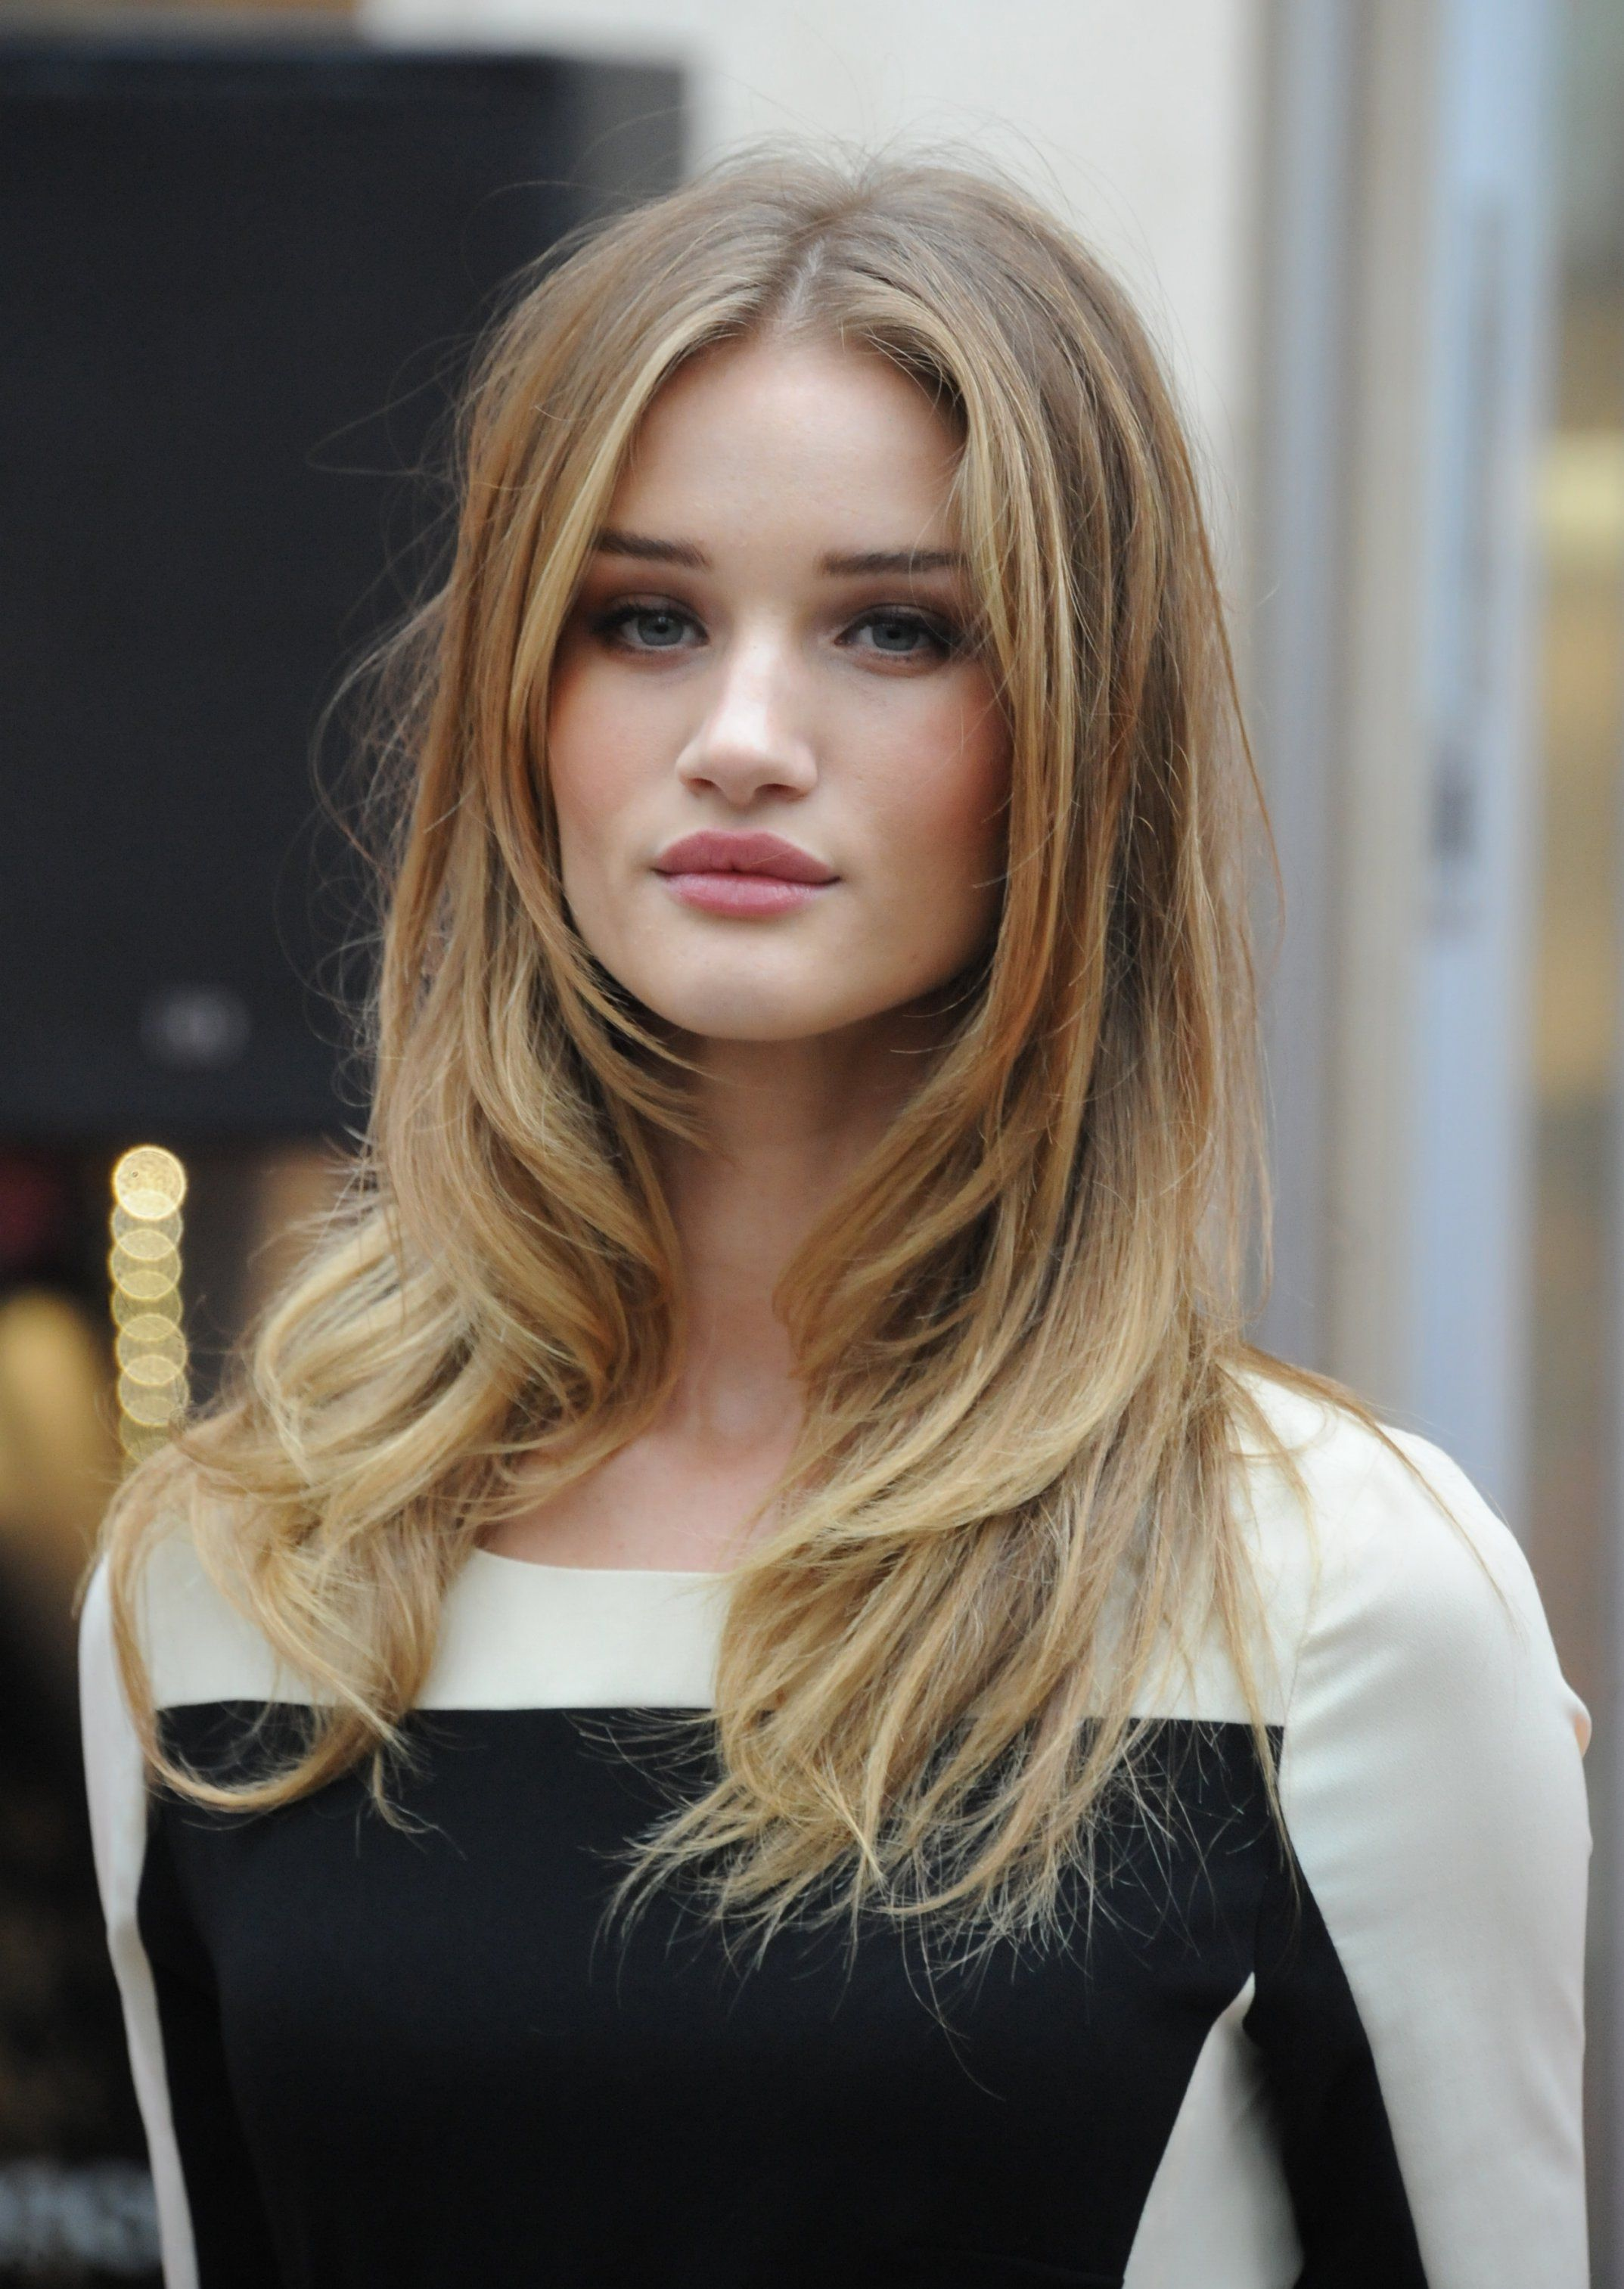 50 Best Hairstyles For Square Faces Rounding The Angles Bangs With Medium Hair Hair Styles Square Face Hairstyles